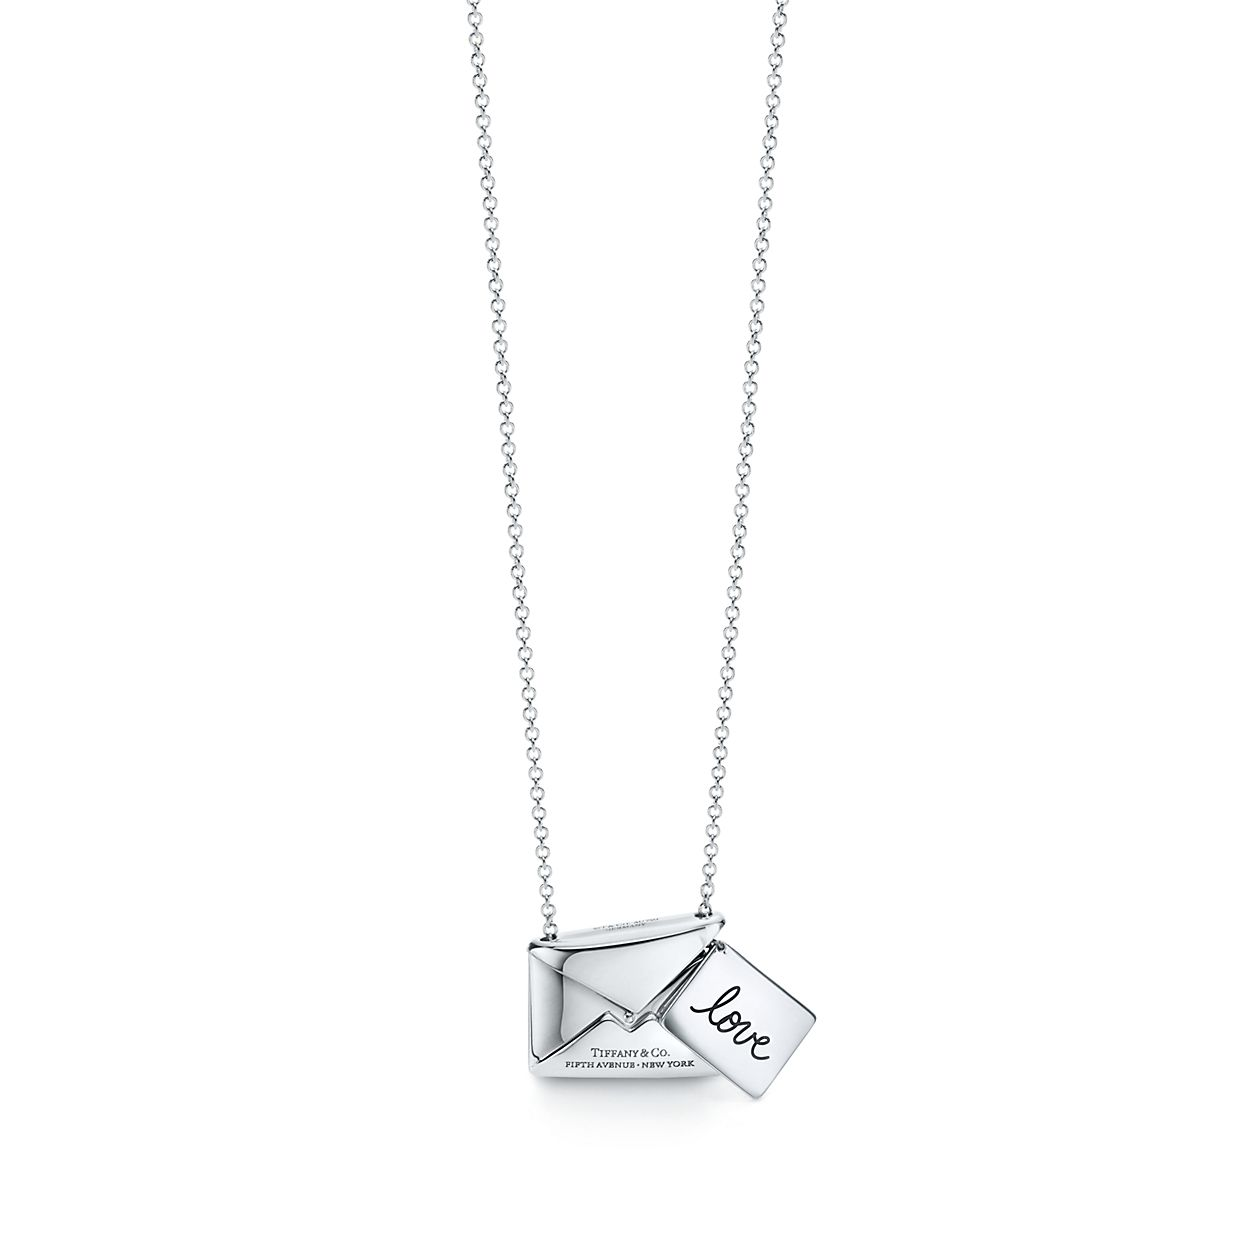 Tiffany charms sweet nothings love letter pendant in sterling silver tiffany charmssweet nothings lovebrletter pendant mozeypictures Gallery